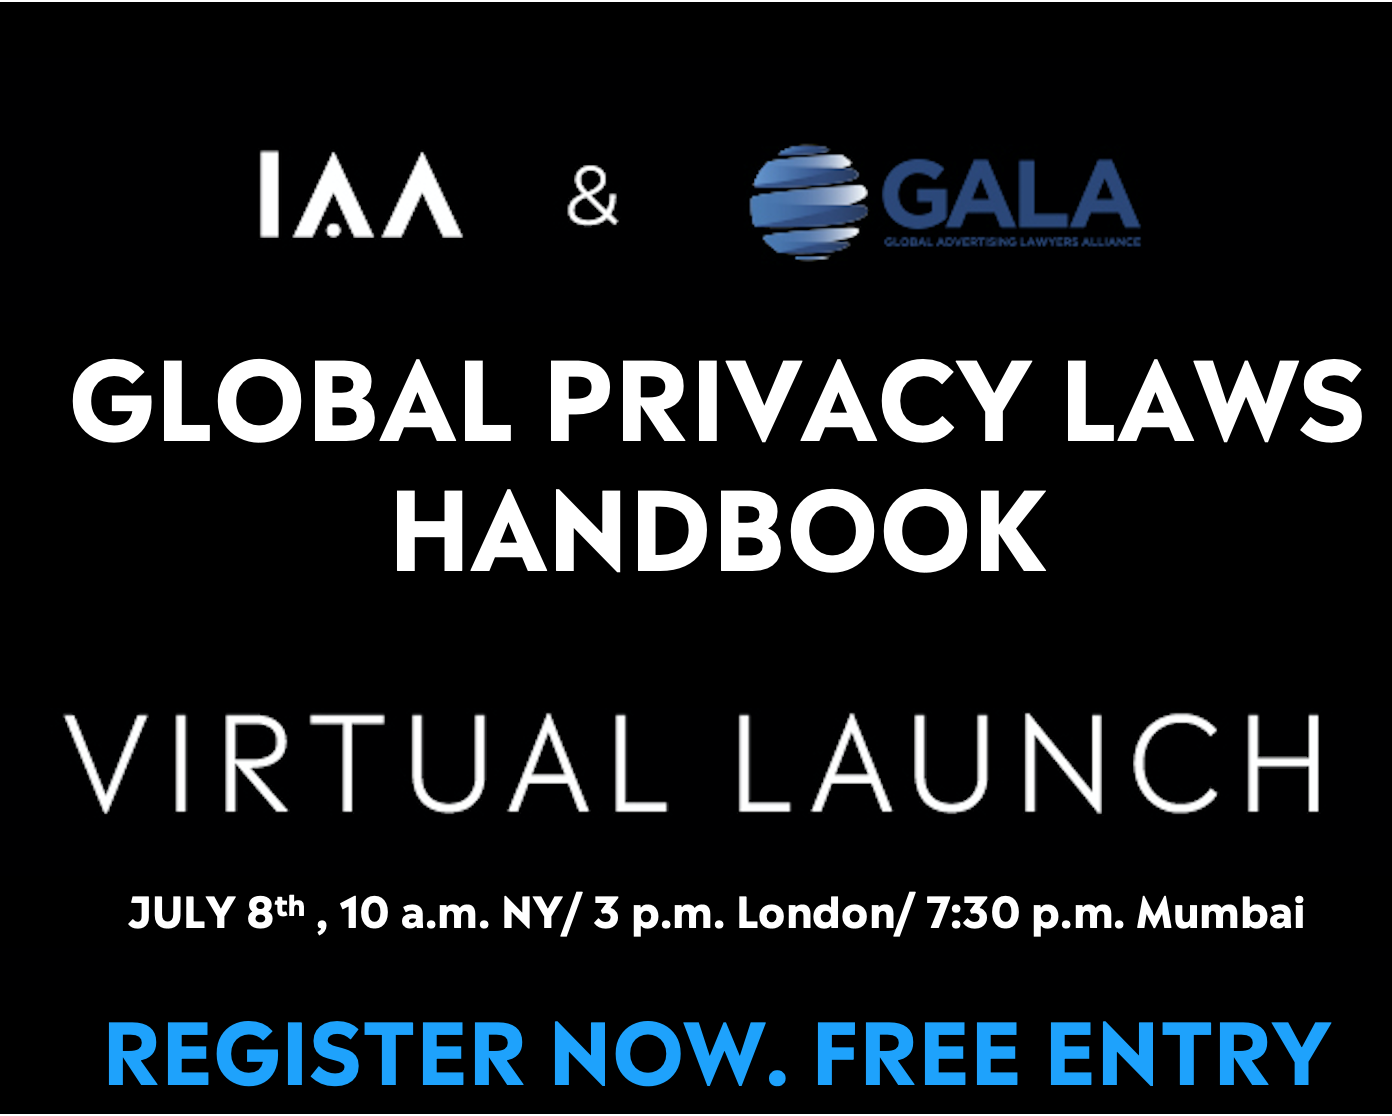 Global Privacy Laws Handbook Launch